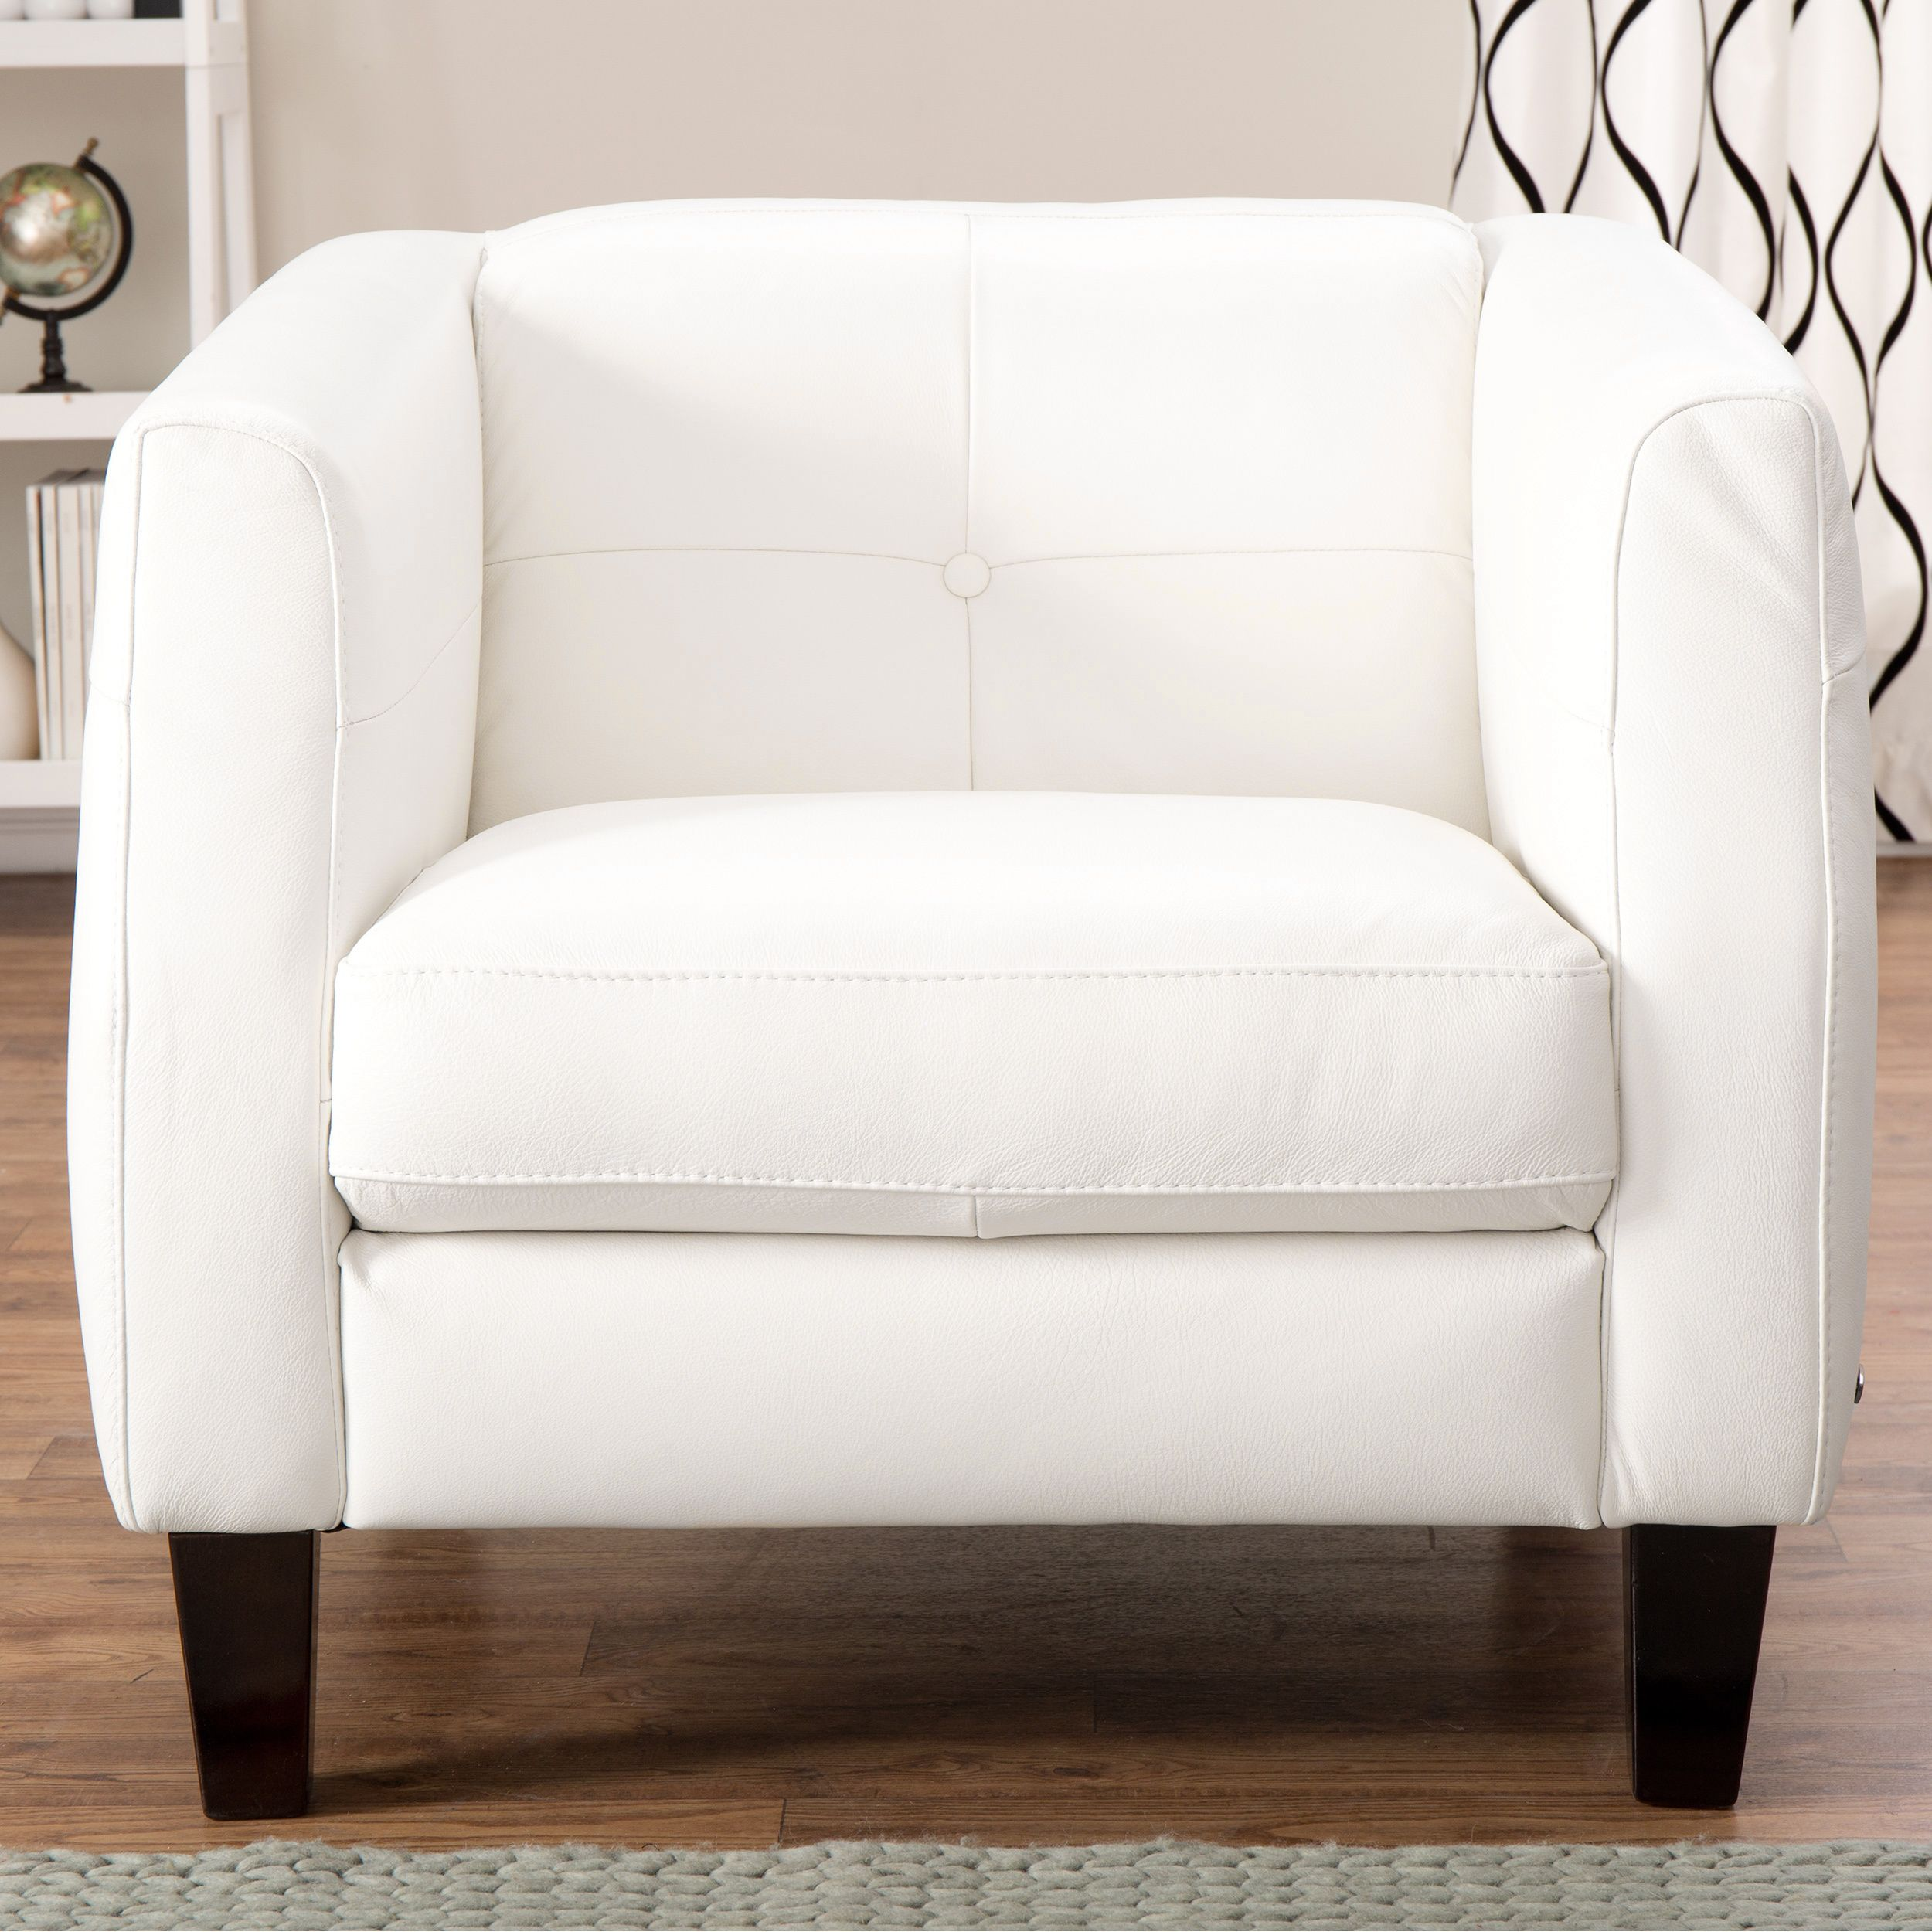 Overstock Com Online Shopping Bedding Furniture Electronics Jewelry Clothing More White Leather Armchair Leather Armchair White Leather Chair